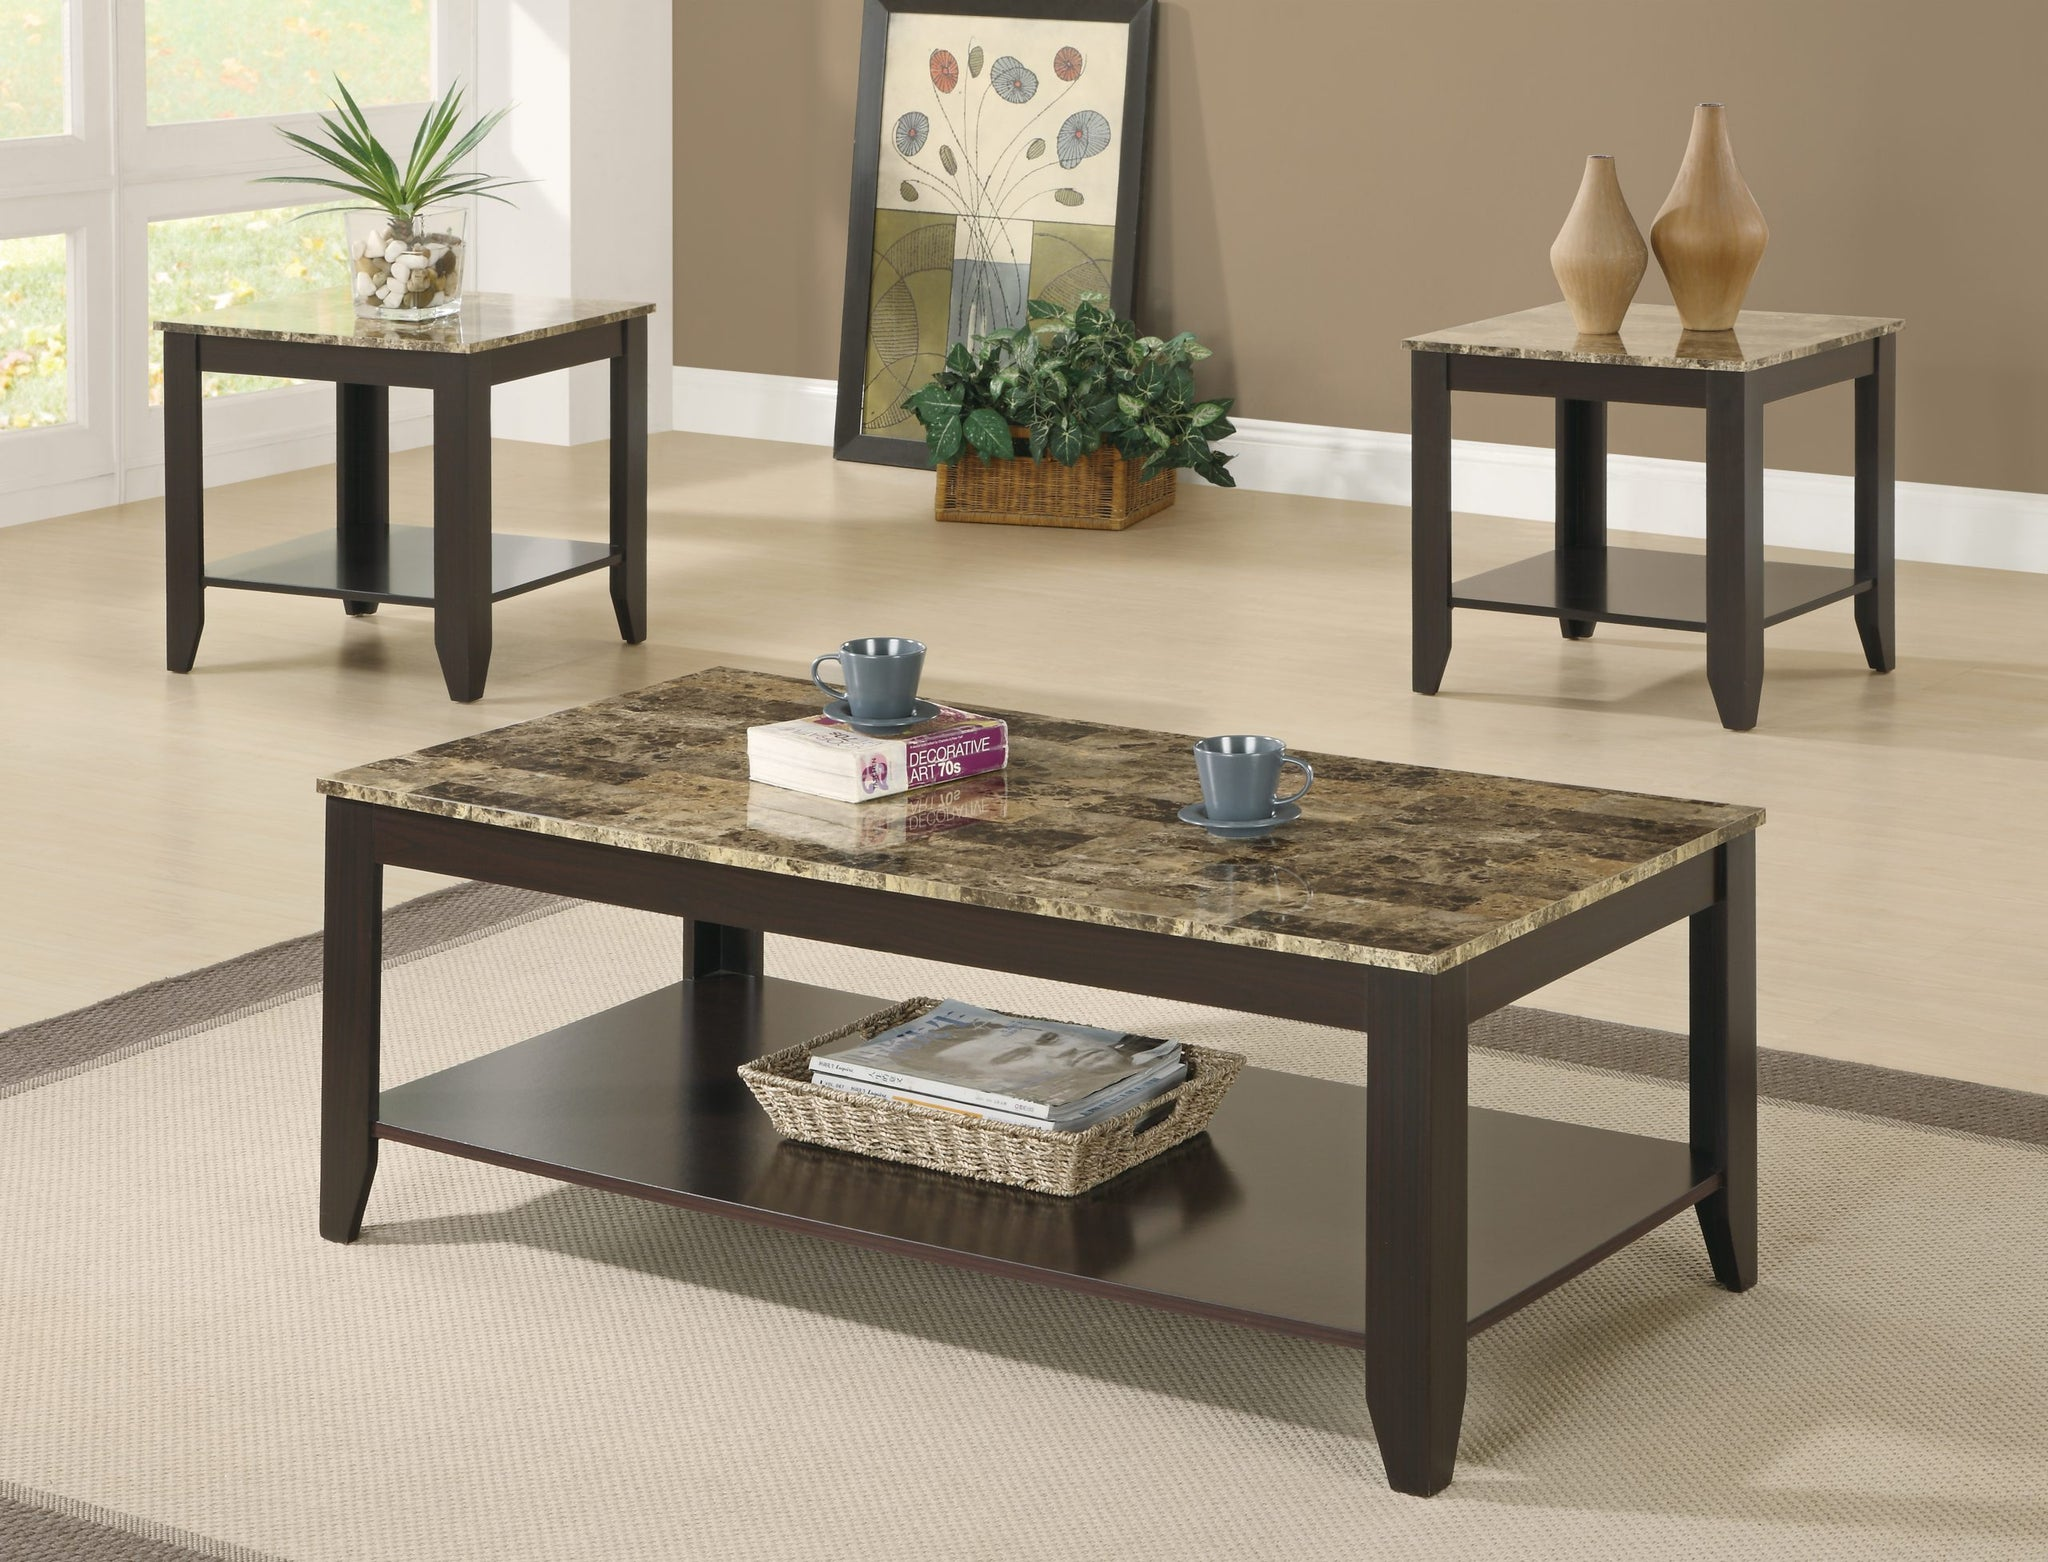 I 7984P- 3 PCS TABLE SET/ CAPPUCCINO / MARBLE-LOOK TOP